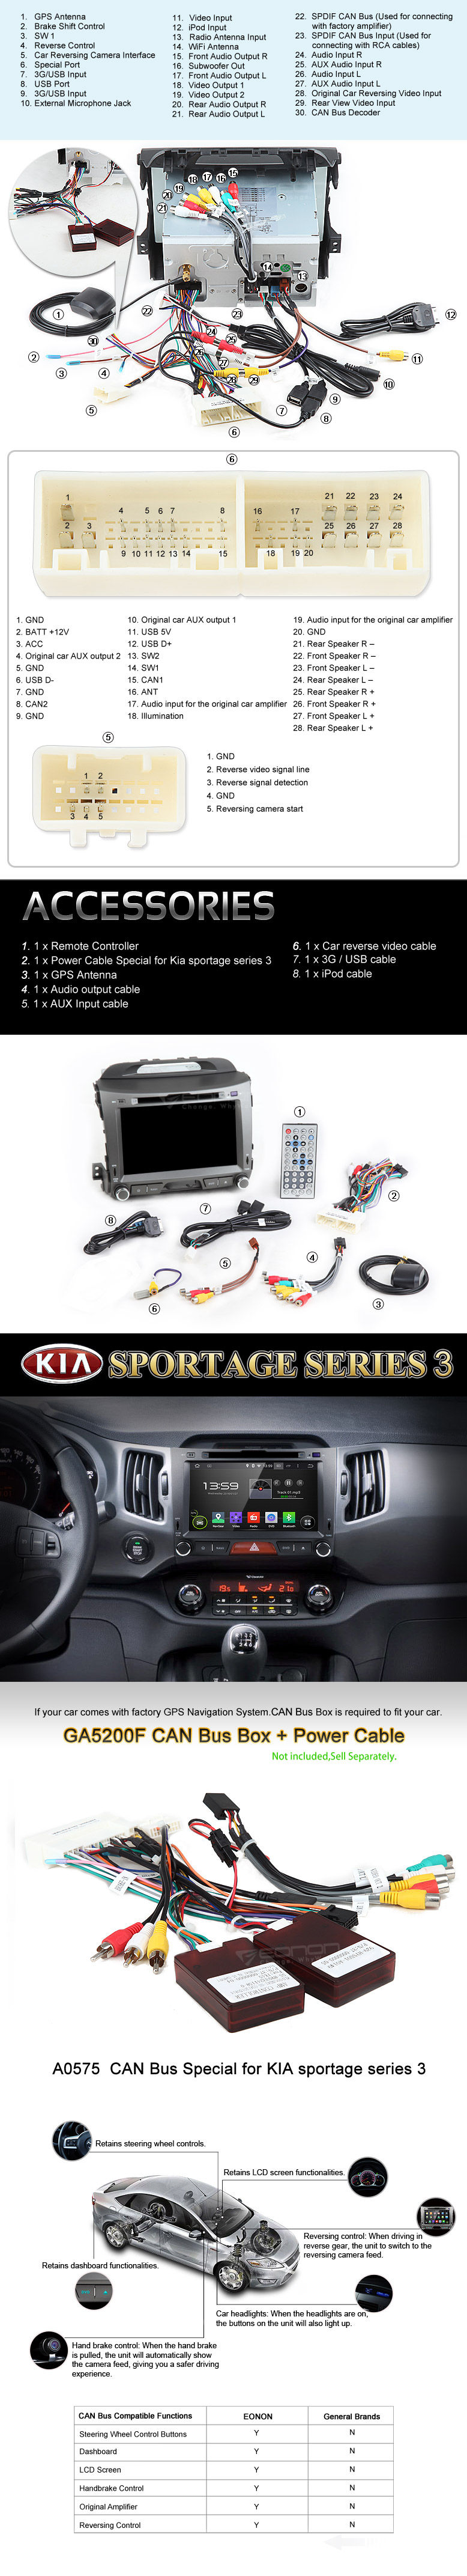 Kia android car dvd gps,android car stereo,car dvd player